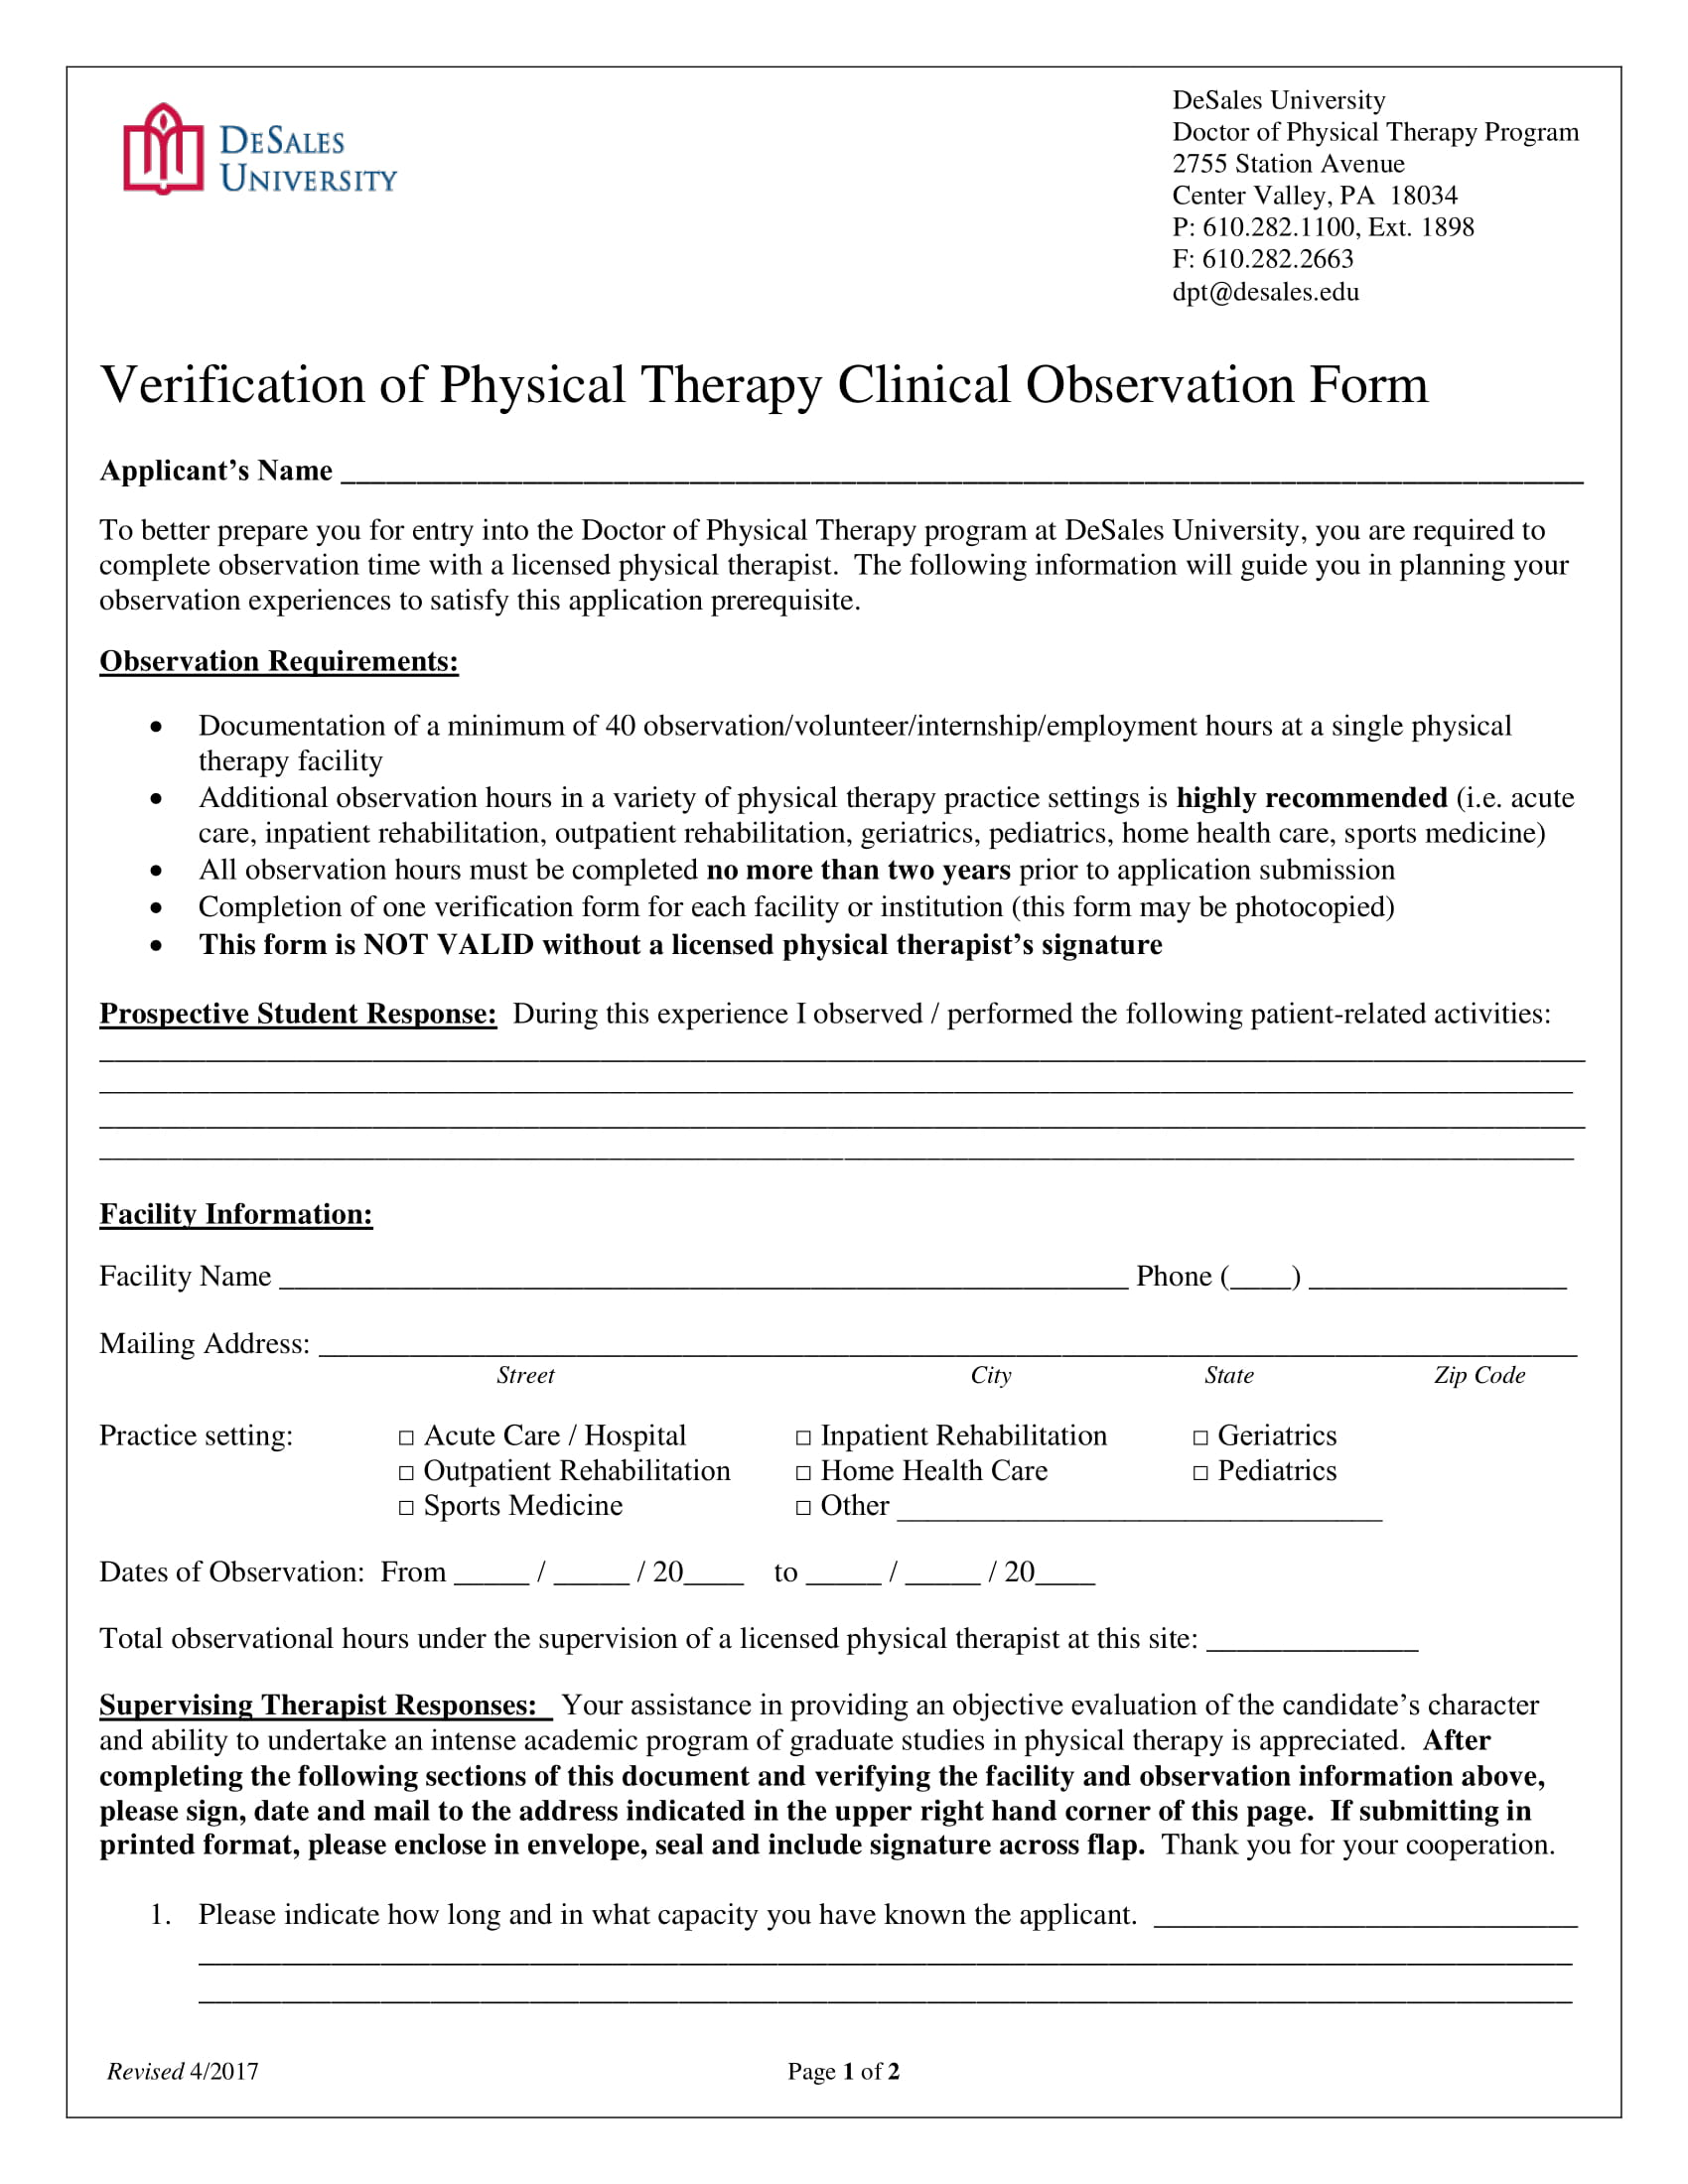 Physical Therapy Observation Hours Form